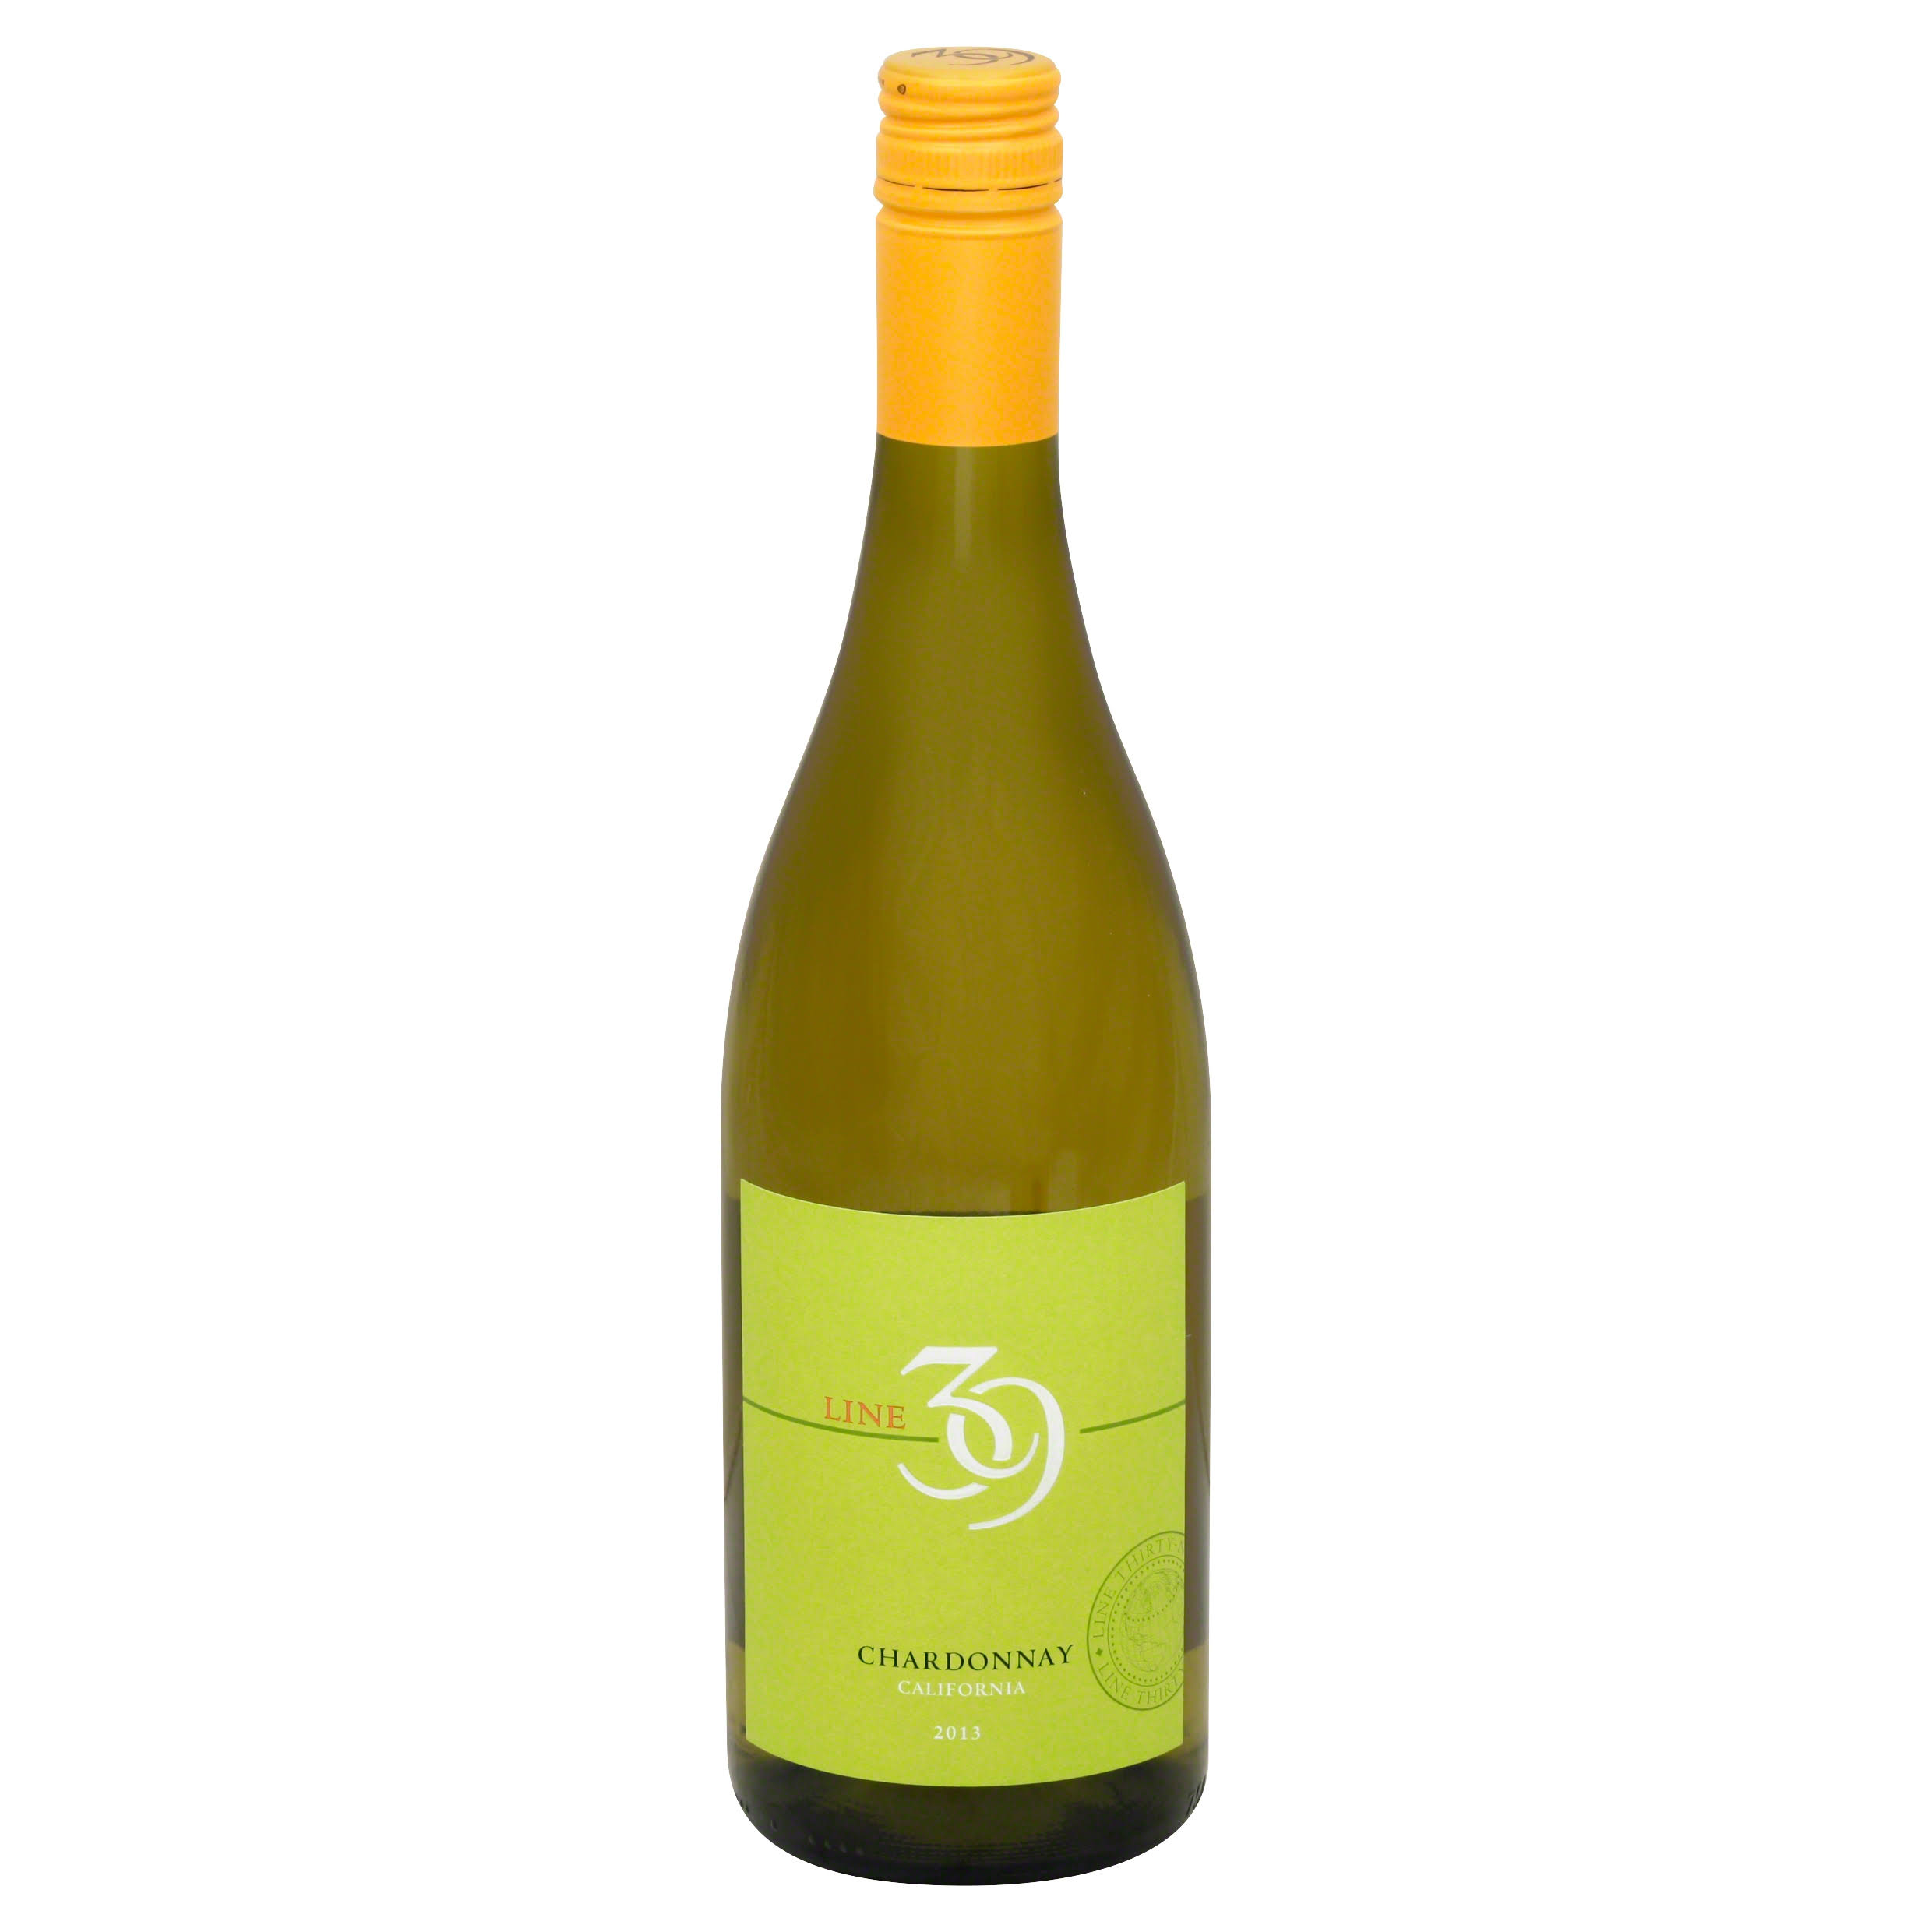 Line 39 Chardonnay, California, 2013 - 750 ml